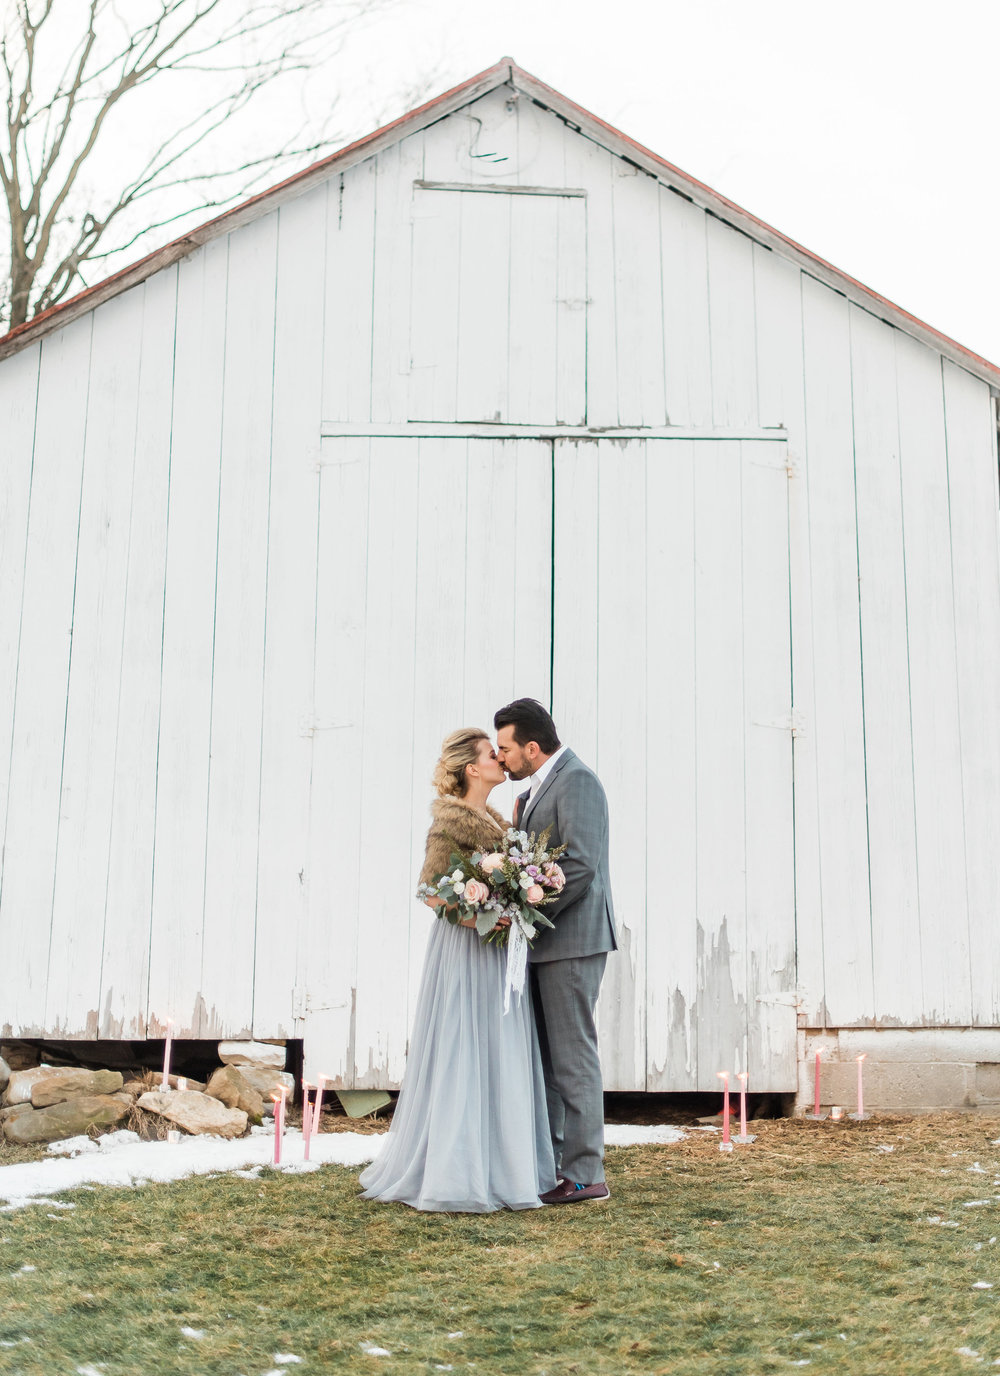 winter-romantic-snowy-pastel-pennsylvania-pittsburgh-wedding-styled-shoot-0029.jpg